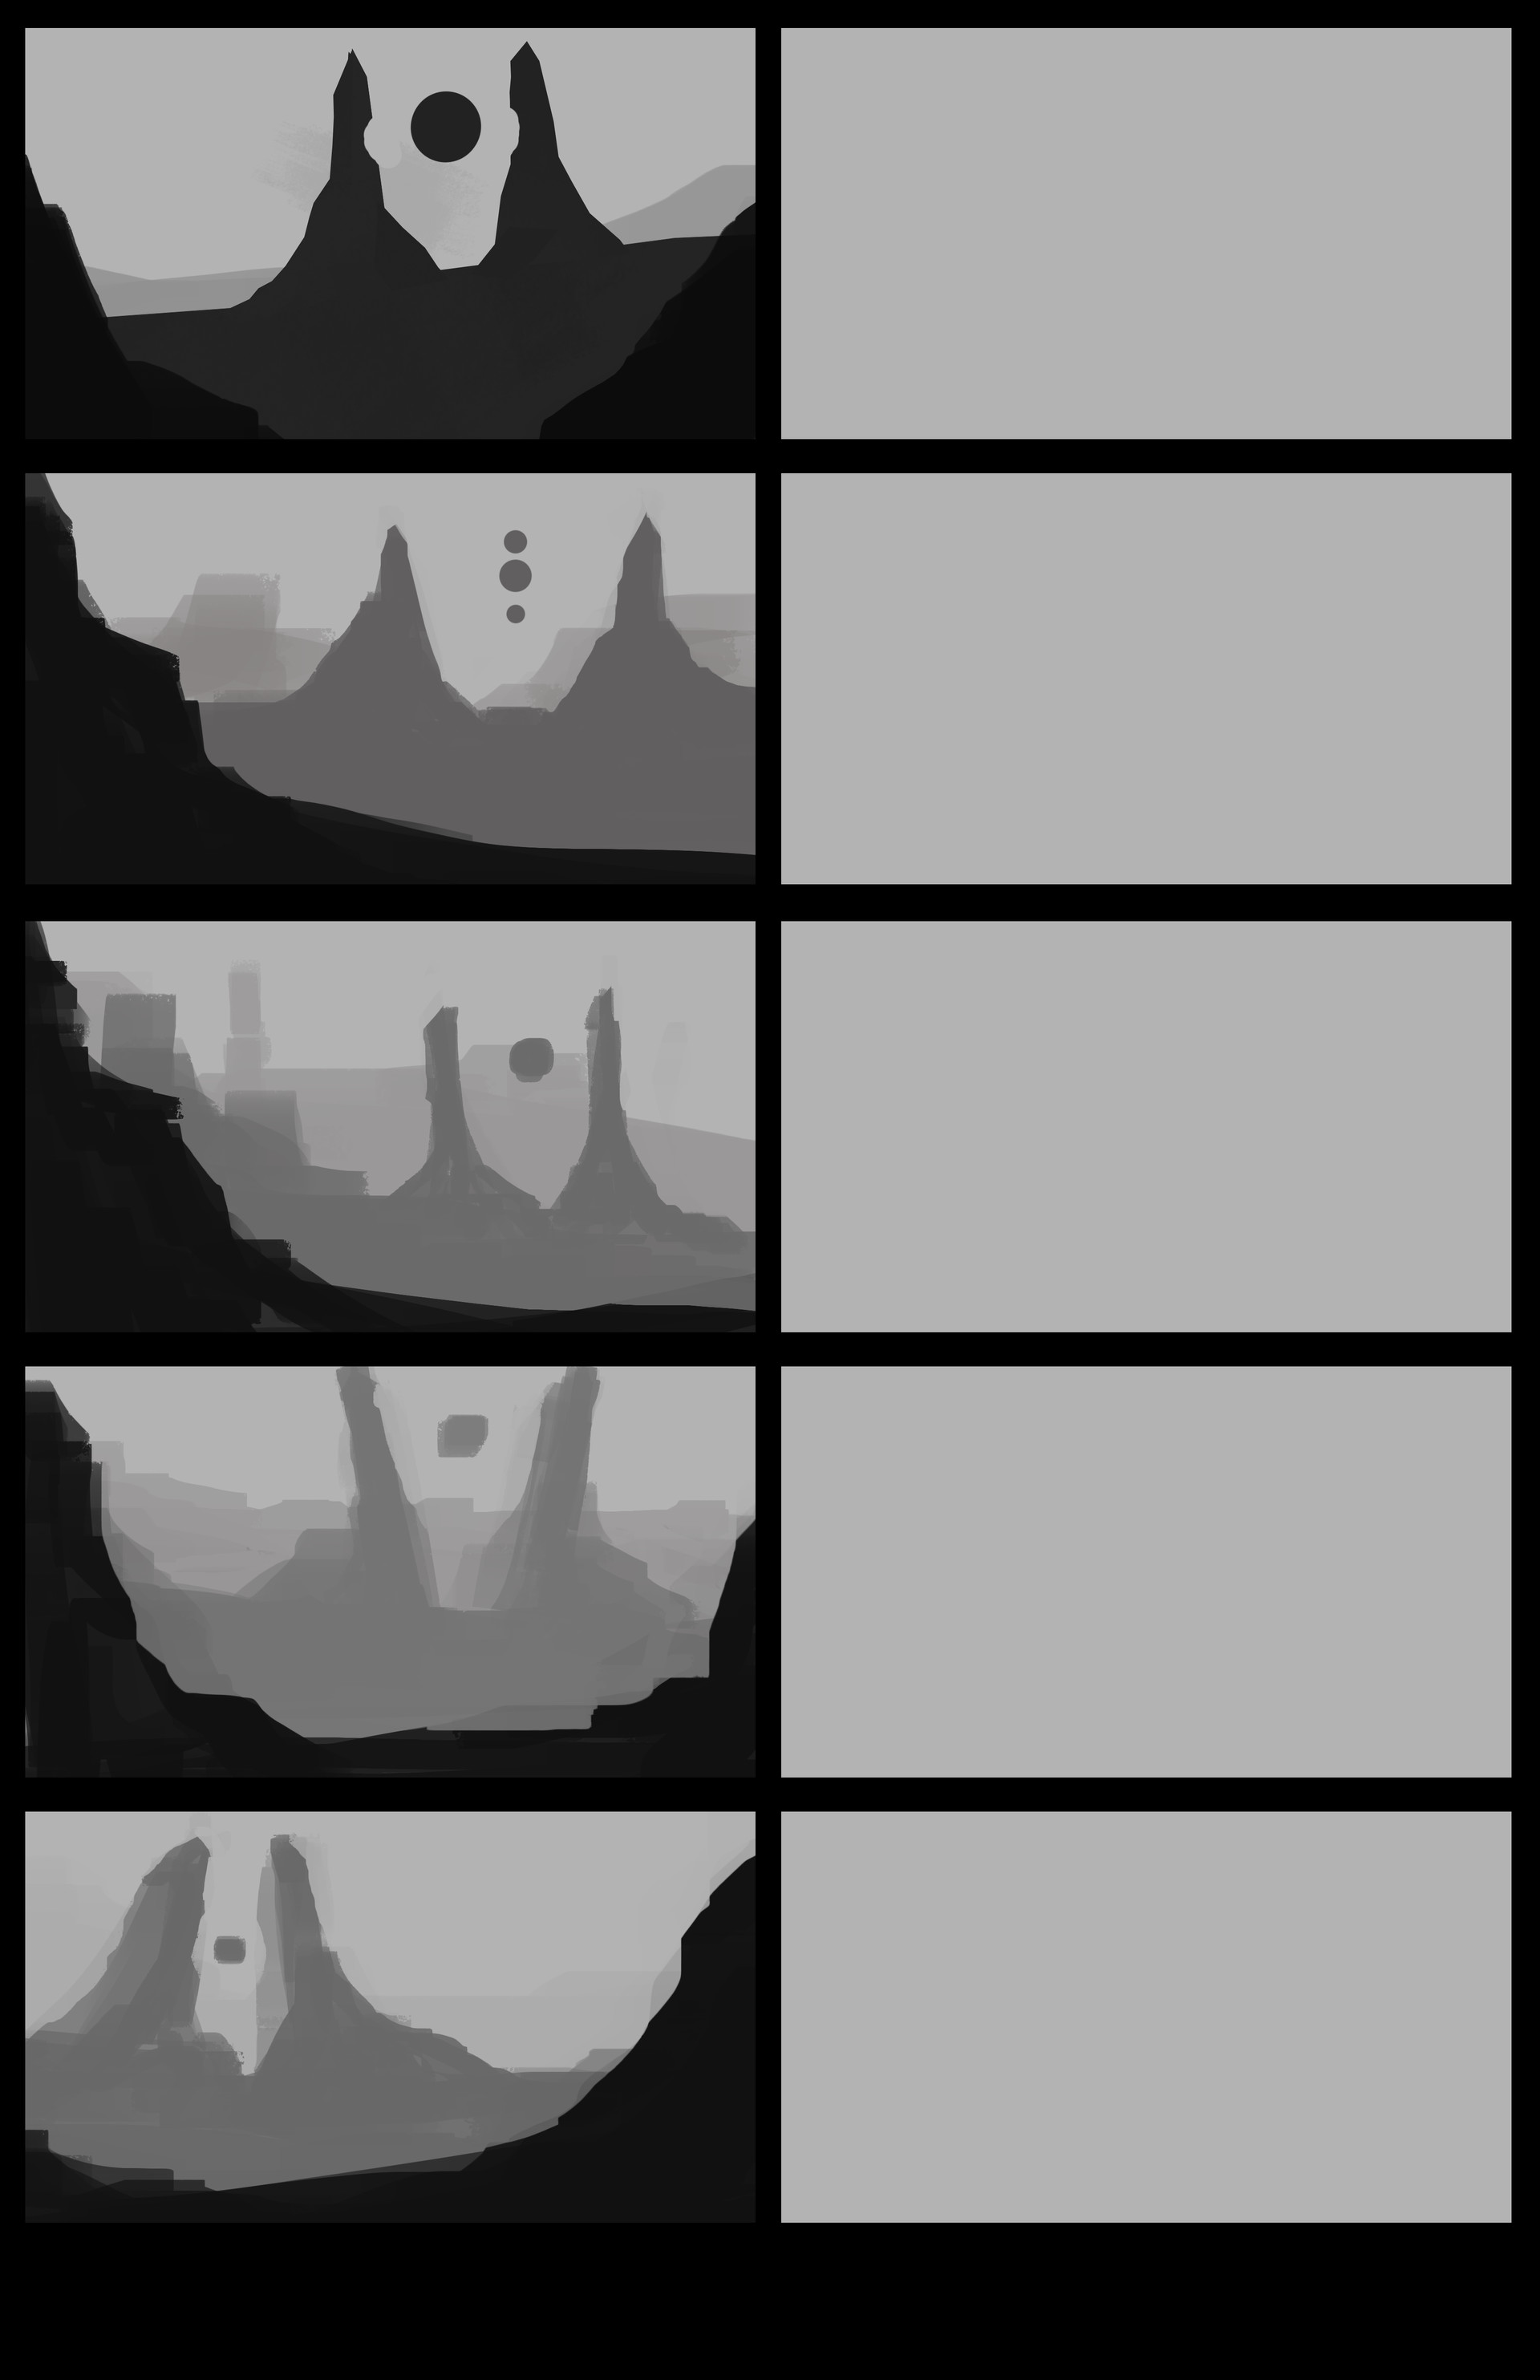 Jack dowell the stone gates thumbnails